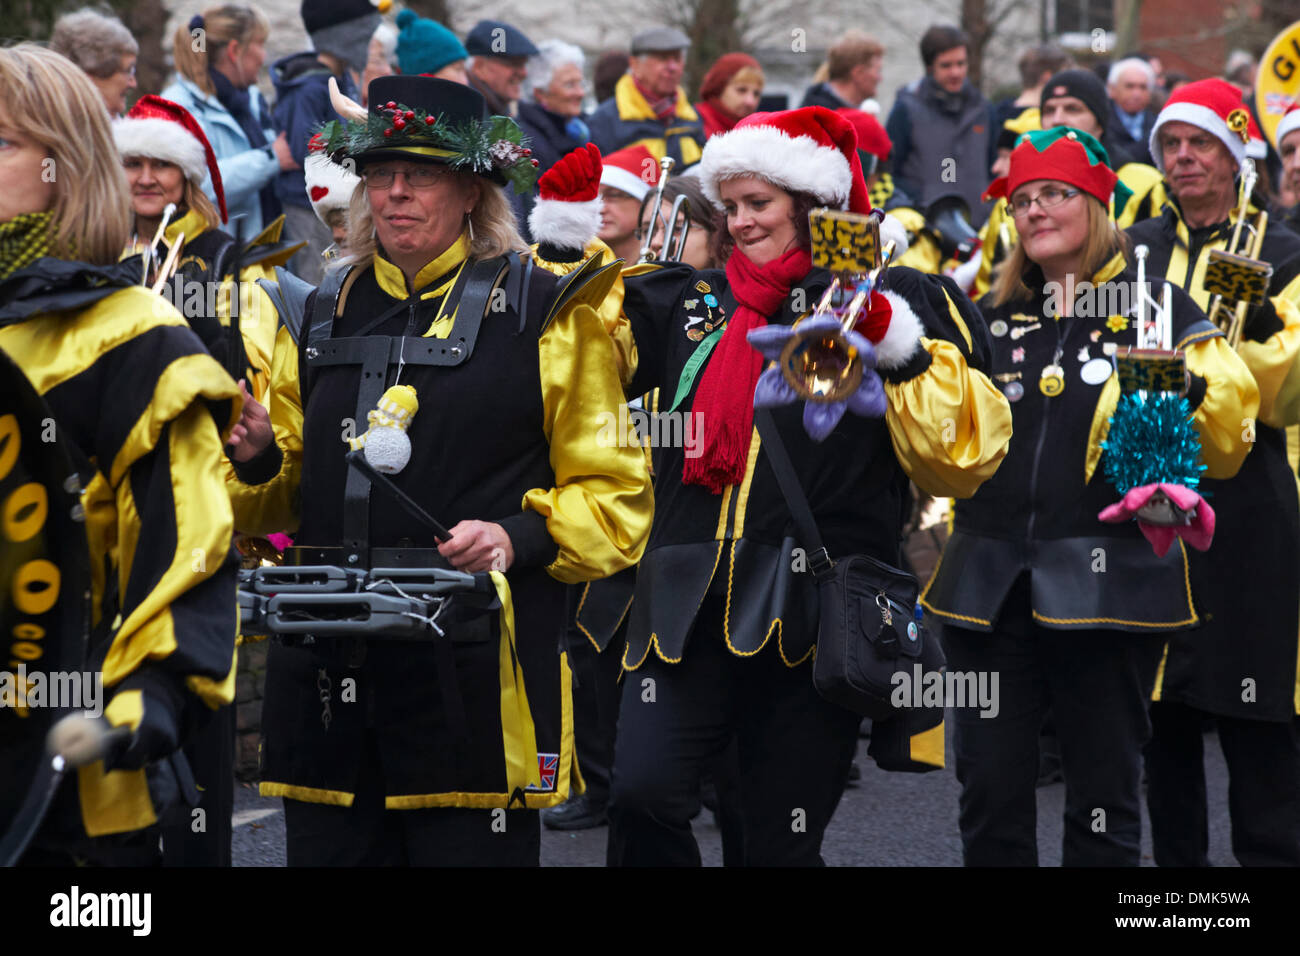 Wimborne, Dorset, UK. 14th December 2013. Crowds turn out to watch the 25th Wimborne Save The Children Christmas Parade. Gugge 2000, Gugge2000, Swiss style guggemusik band marching band. Credit:  Carolyn Jenkins/Alamy Live News Stock Photo